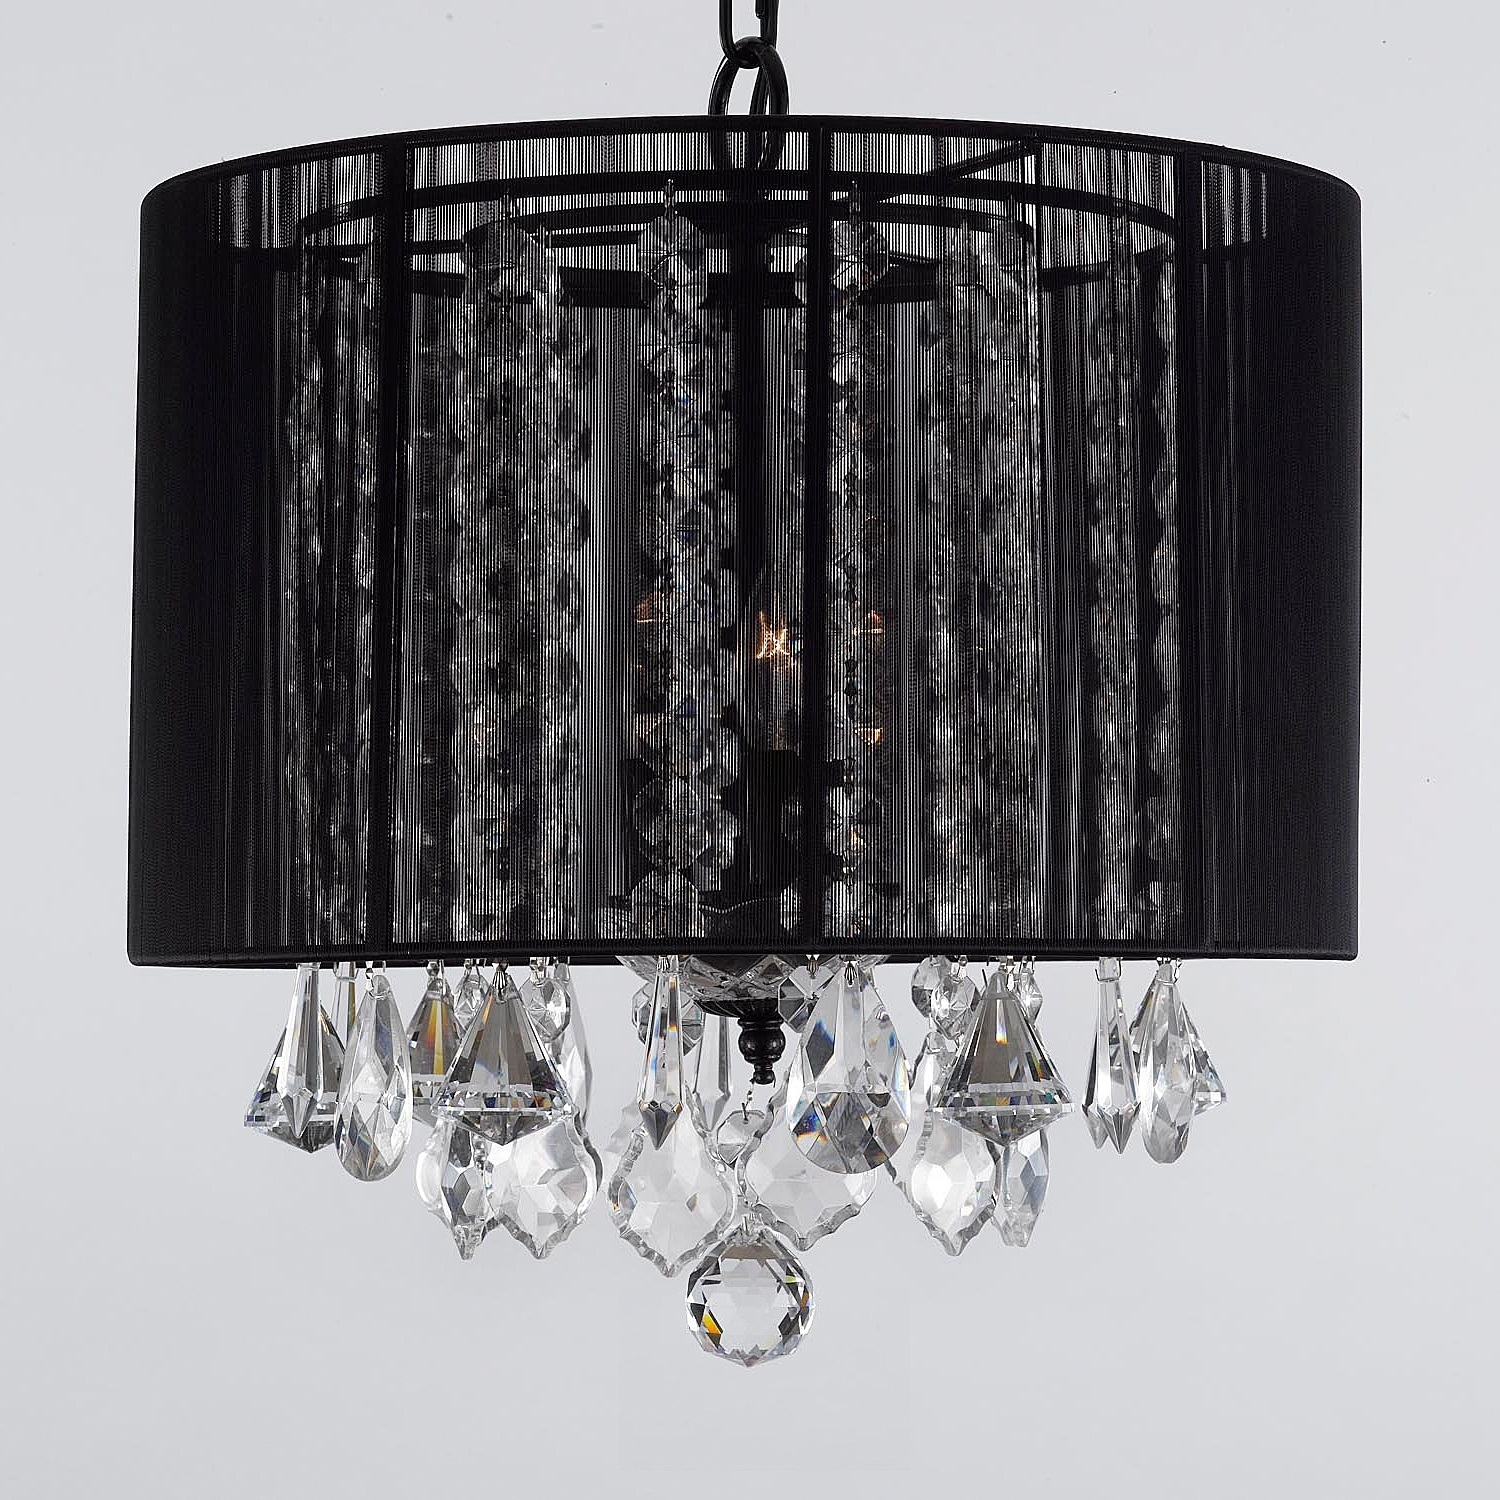 Famous Chandeliers With Black Shades With Regard To G7 Black/604/3 Gallery Chandeliers With Shades Crystal Chandelier (View 8 of 15)